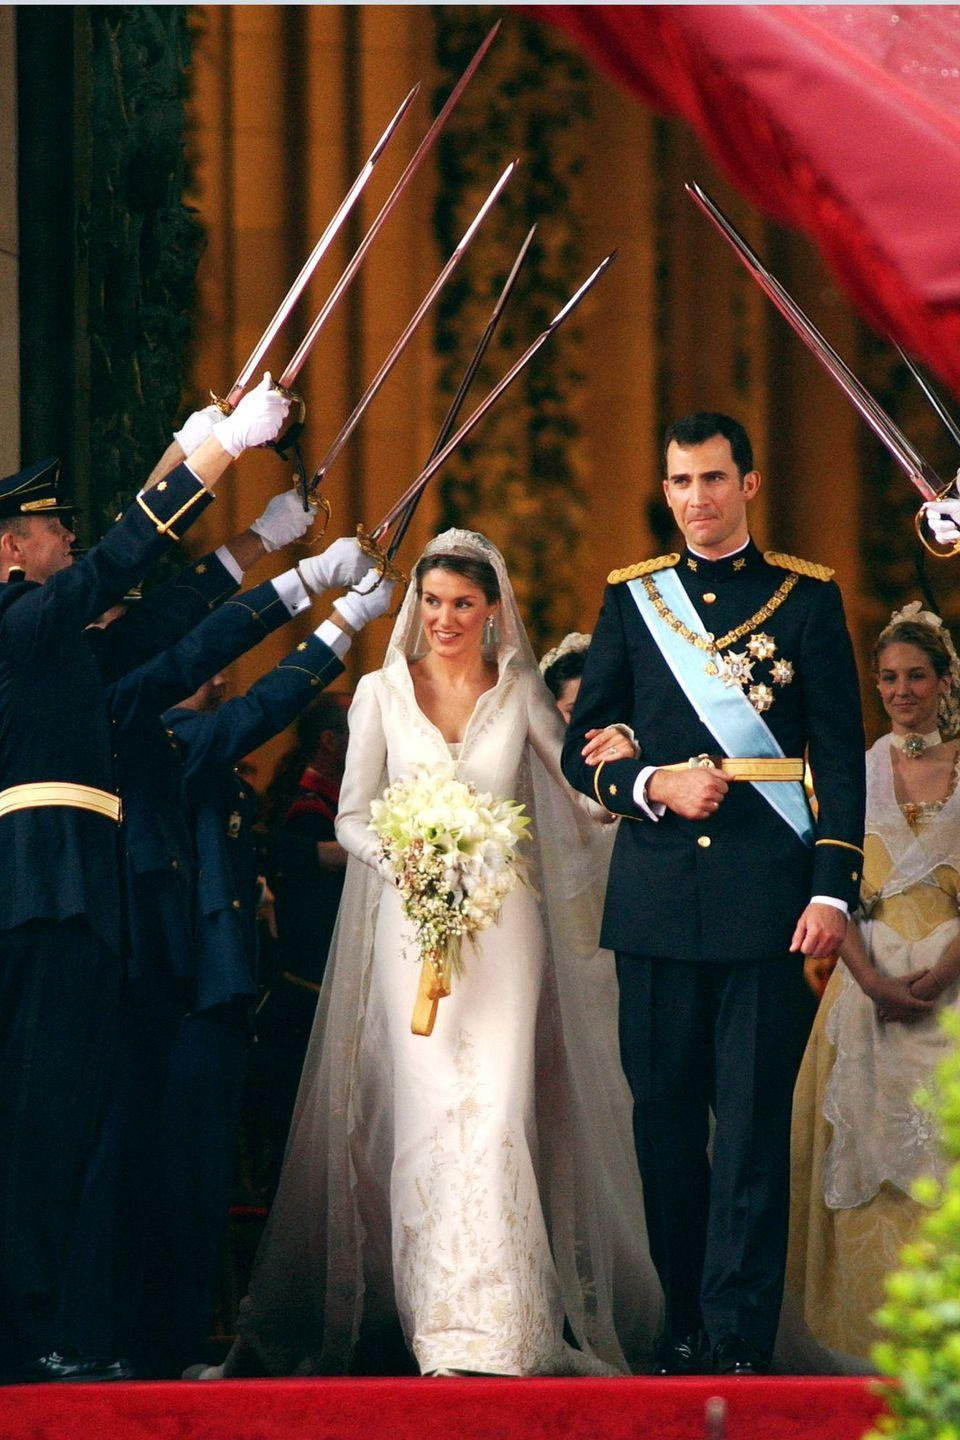 <p>King Felipe met Letizia Ortiz Rocasolano in 2002, when she was on assignment as a journalist for CNN, reporting on an oil slick on the shoreline of Galicia. Letizia was there to report on the disaster, while Felipe was there to visit those affected. The pair connected and were married in 2004; they now have two daughters together.</p>